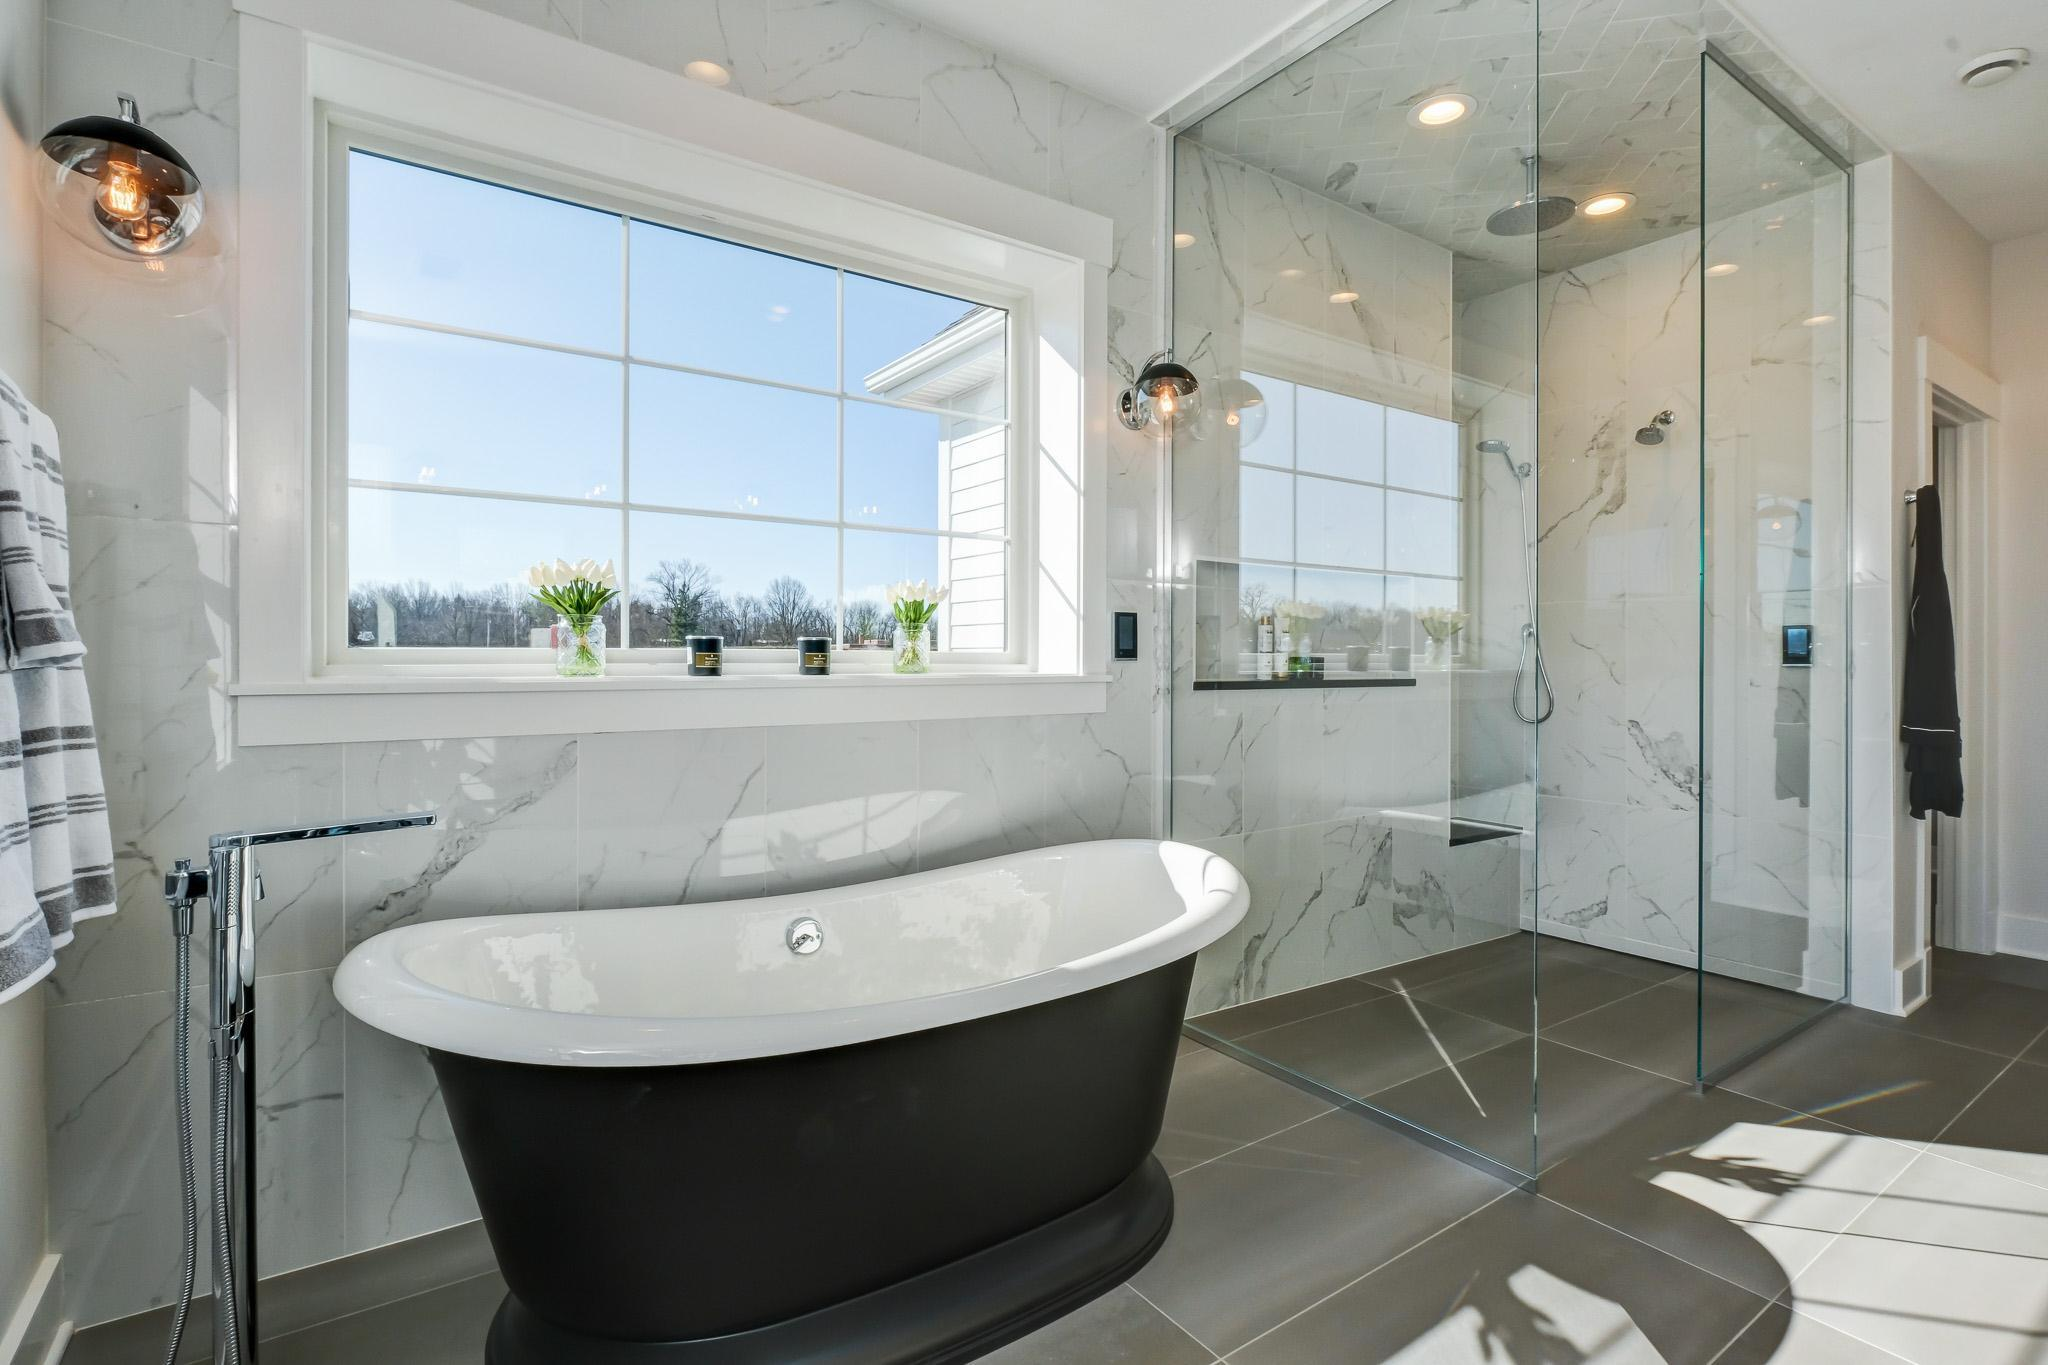 Bathroom featured in the Napa By Infinity Custom Homes in Pittsburgh, PA